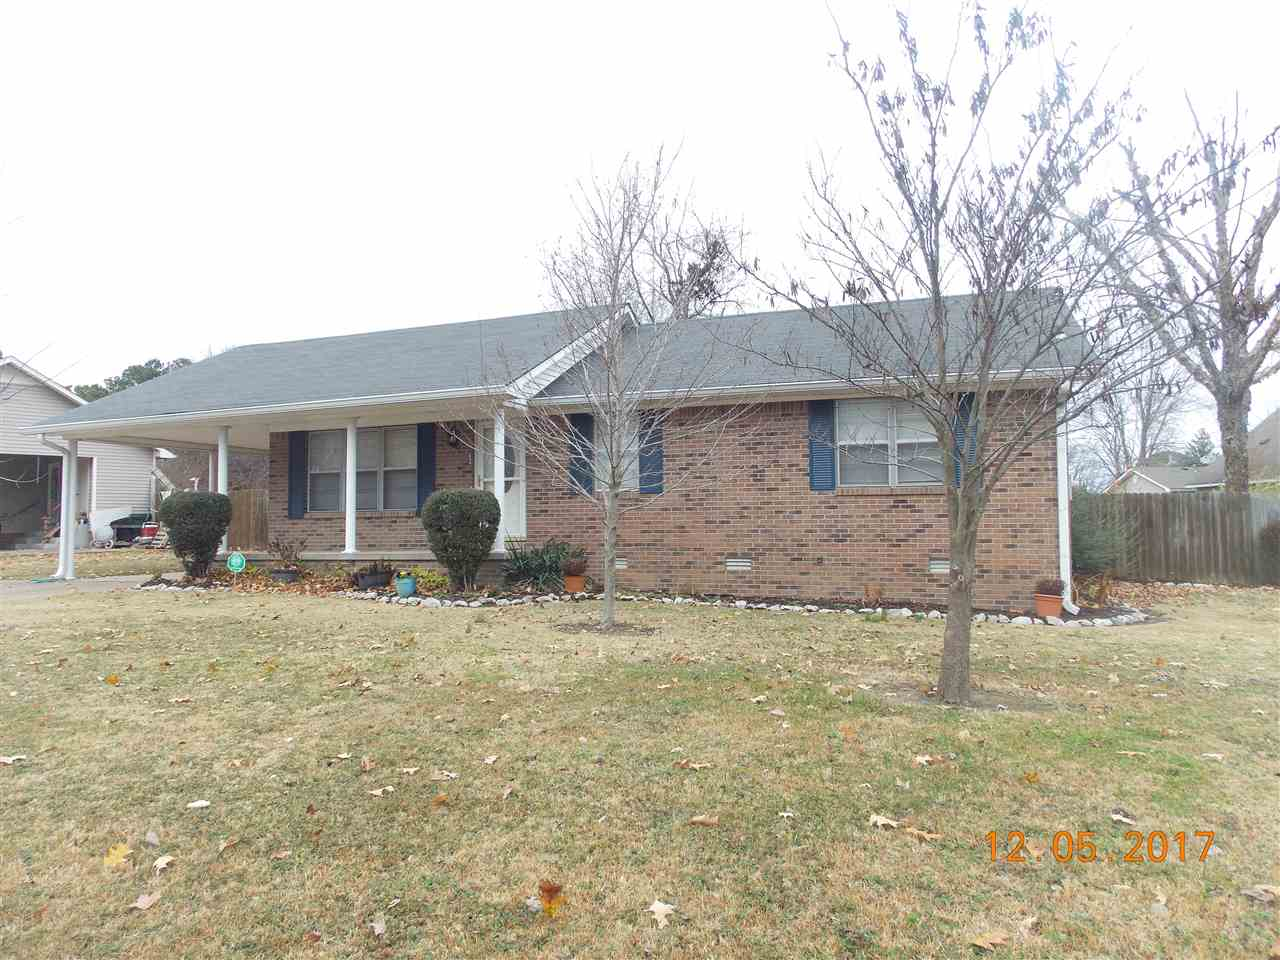 846 Pennell Lane,Dyersburg,Tennessee 38024,2 Bedrooms Bedrooms,1 BathroomBathrooms,Residential,846 Pennell Lane,180704